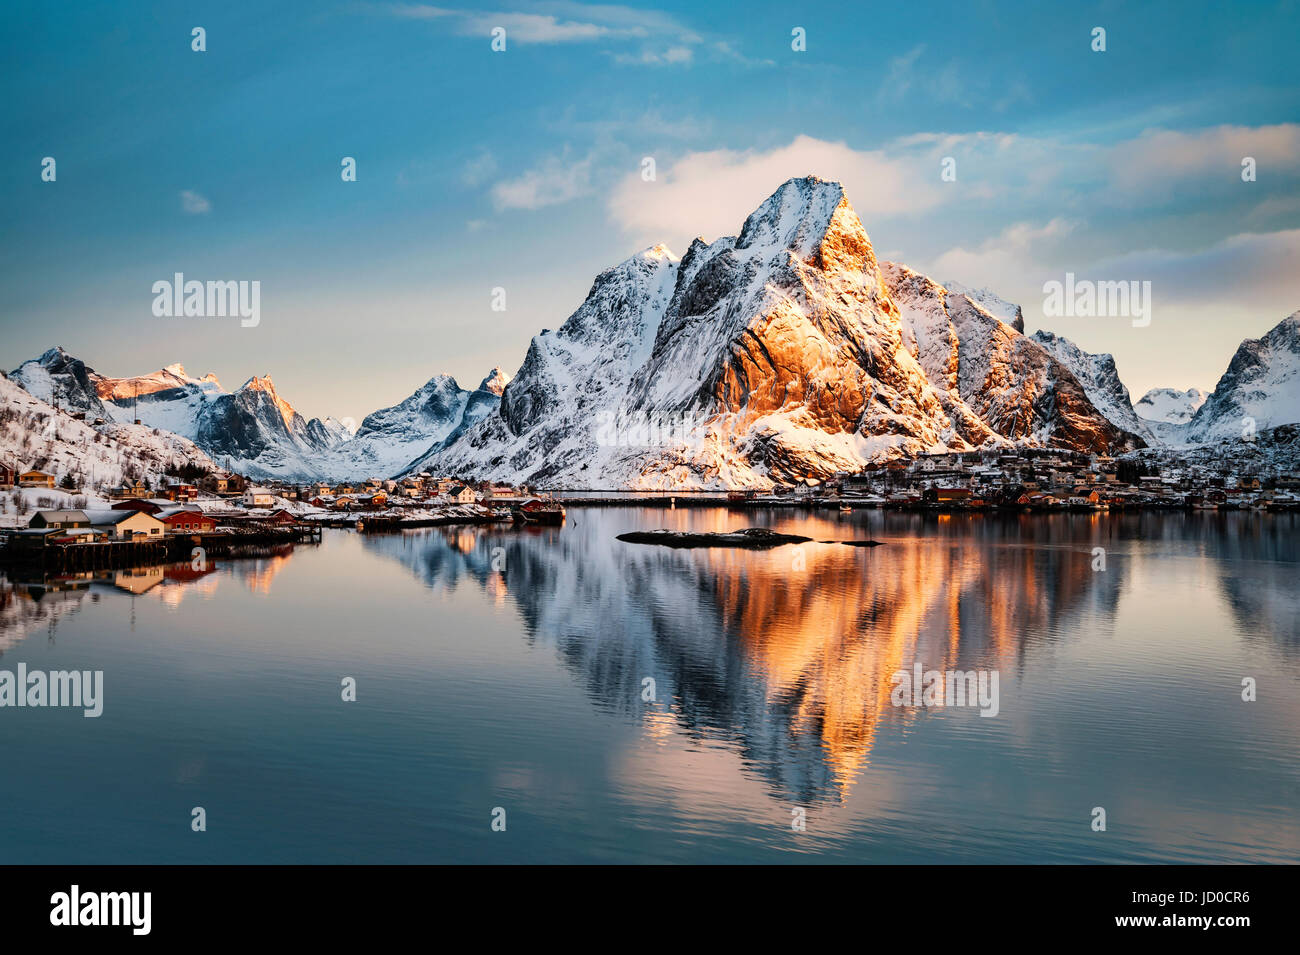 Mount Olstind reflected in the calm waters of Reinfjord on the Lofoten Islands Stock Photo